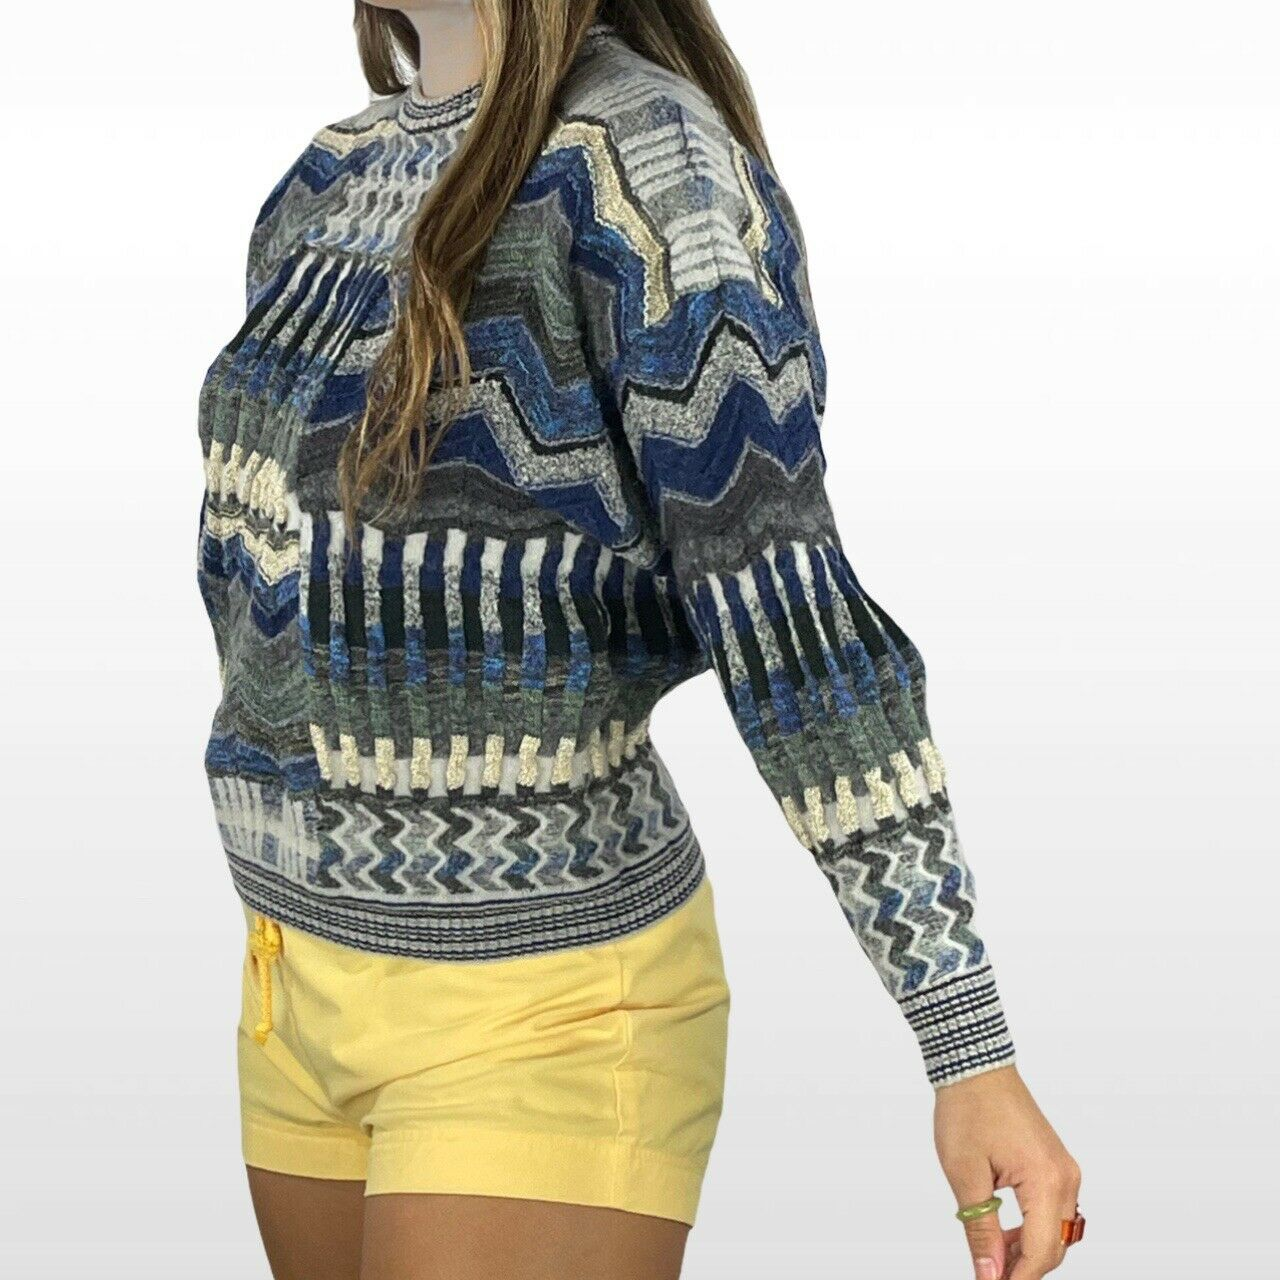 Abstract textured knit sweater - image 3